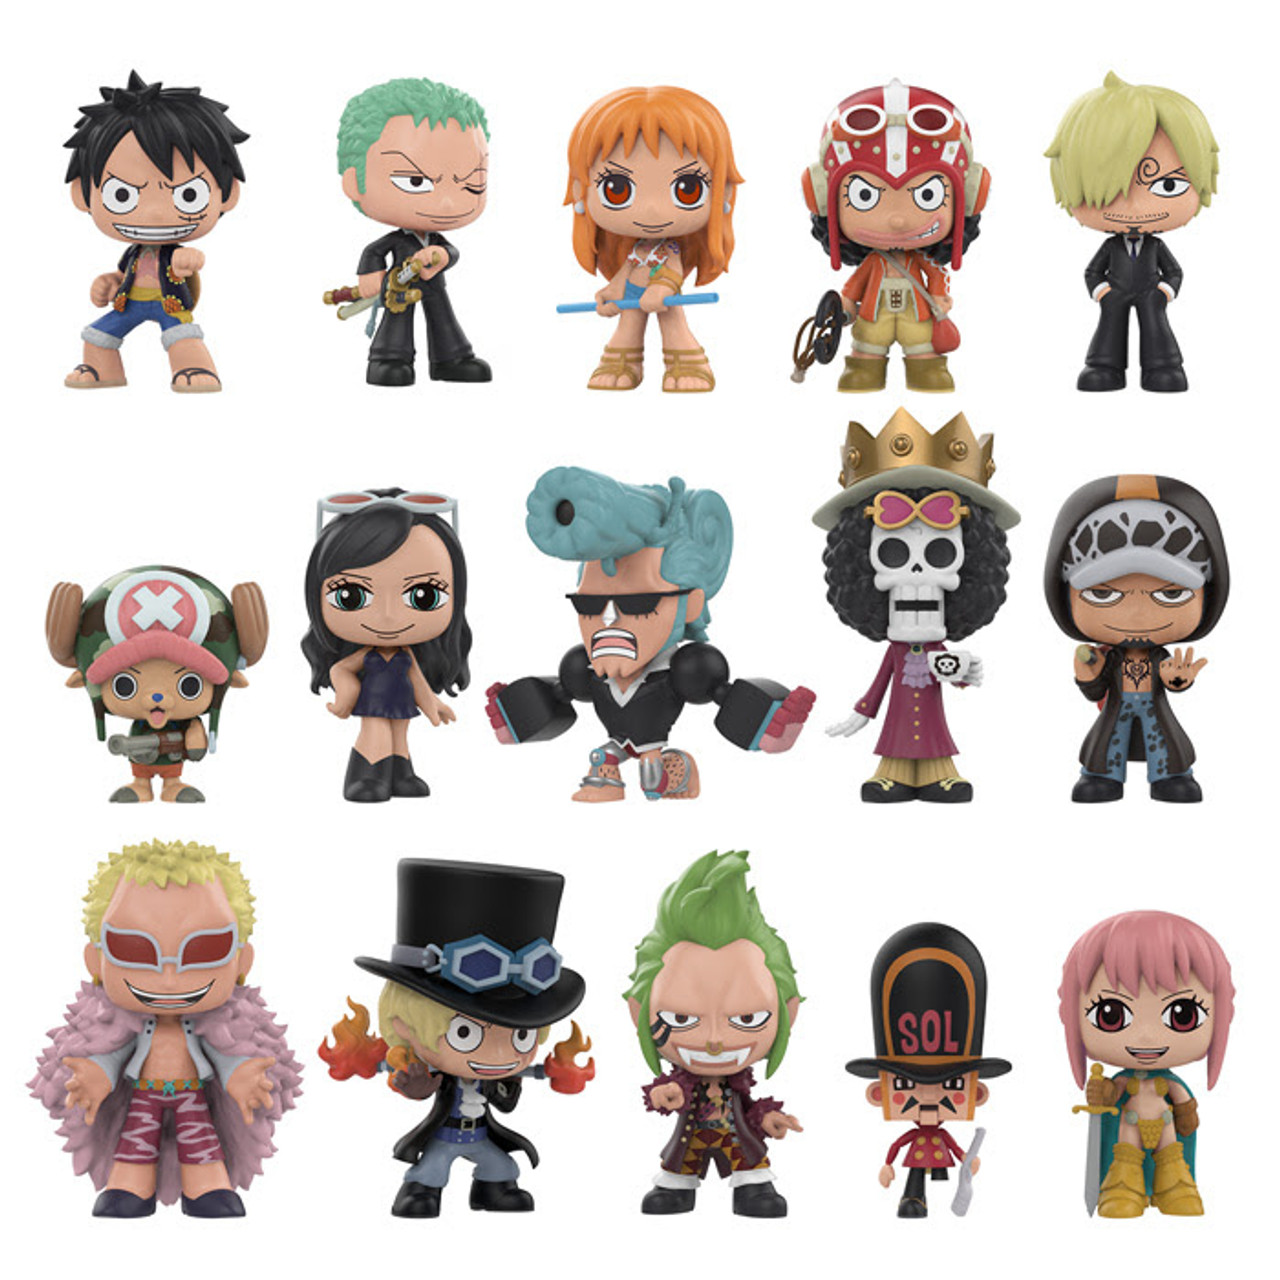 Game of Thrones 2-4986 ALL NEW! Funko Mystery Mini Blind Box